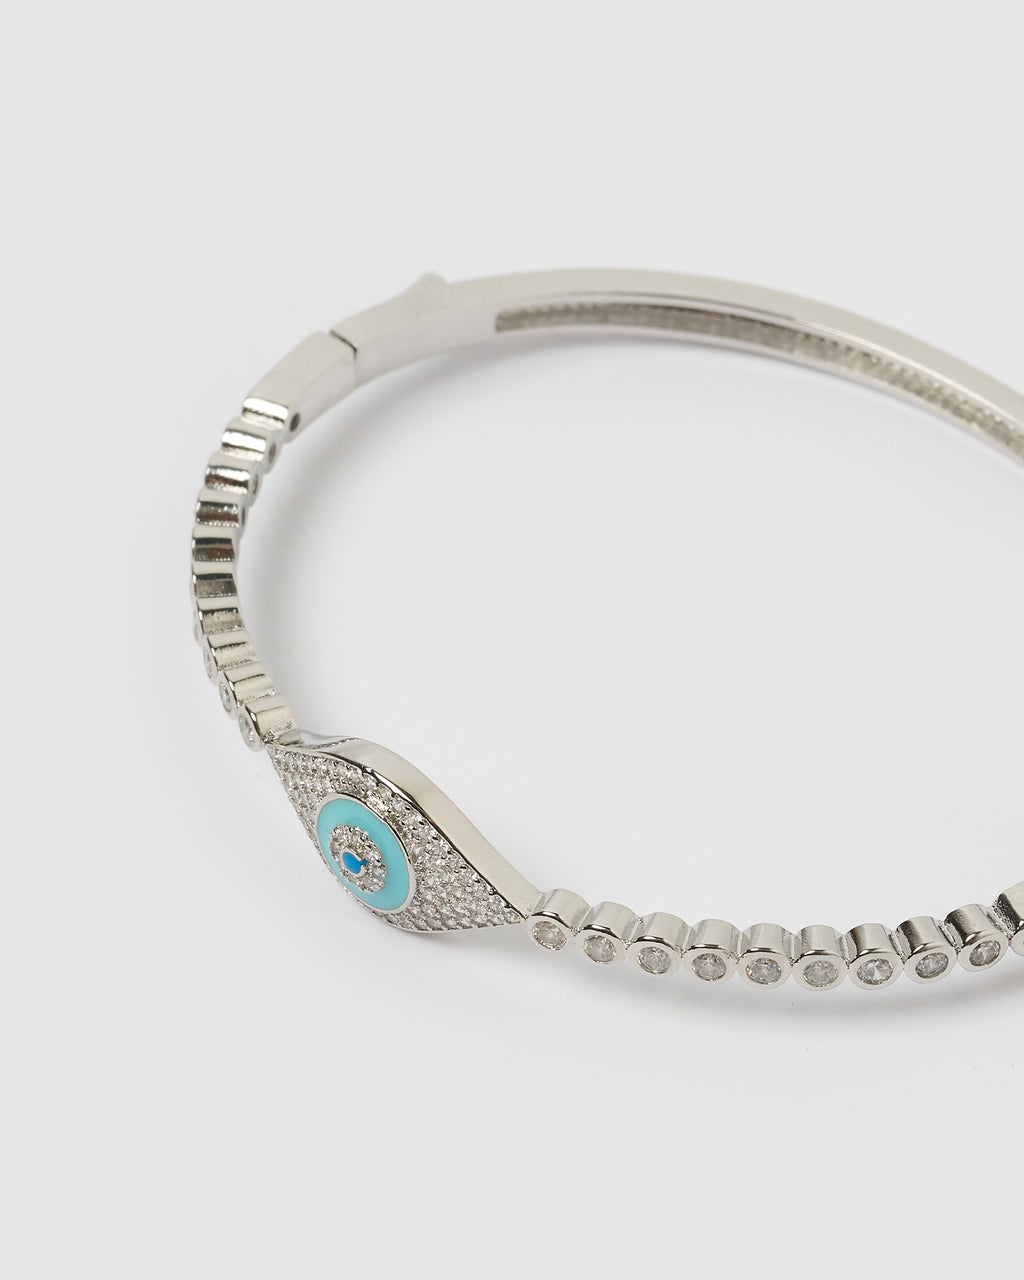 Izoa King Blue Eye Embellished Cuff Silver